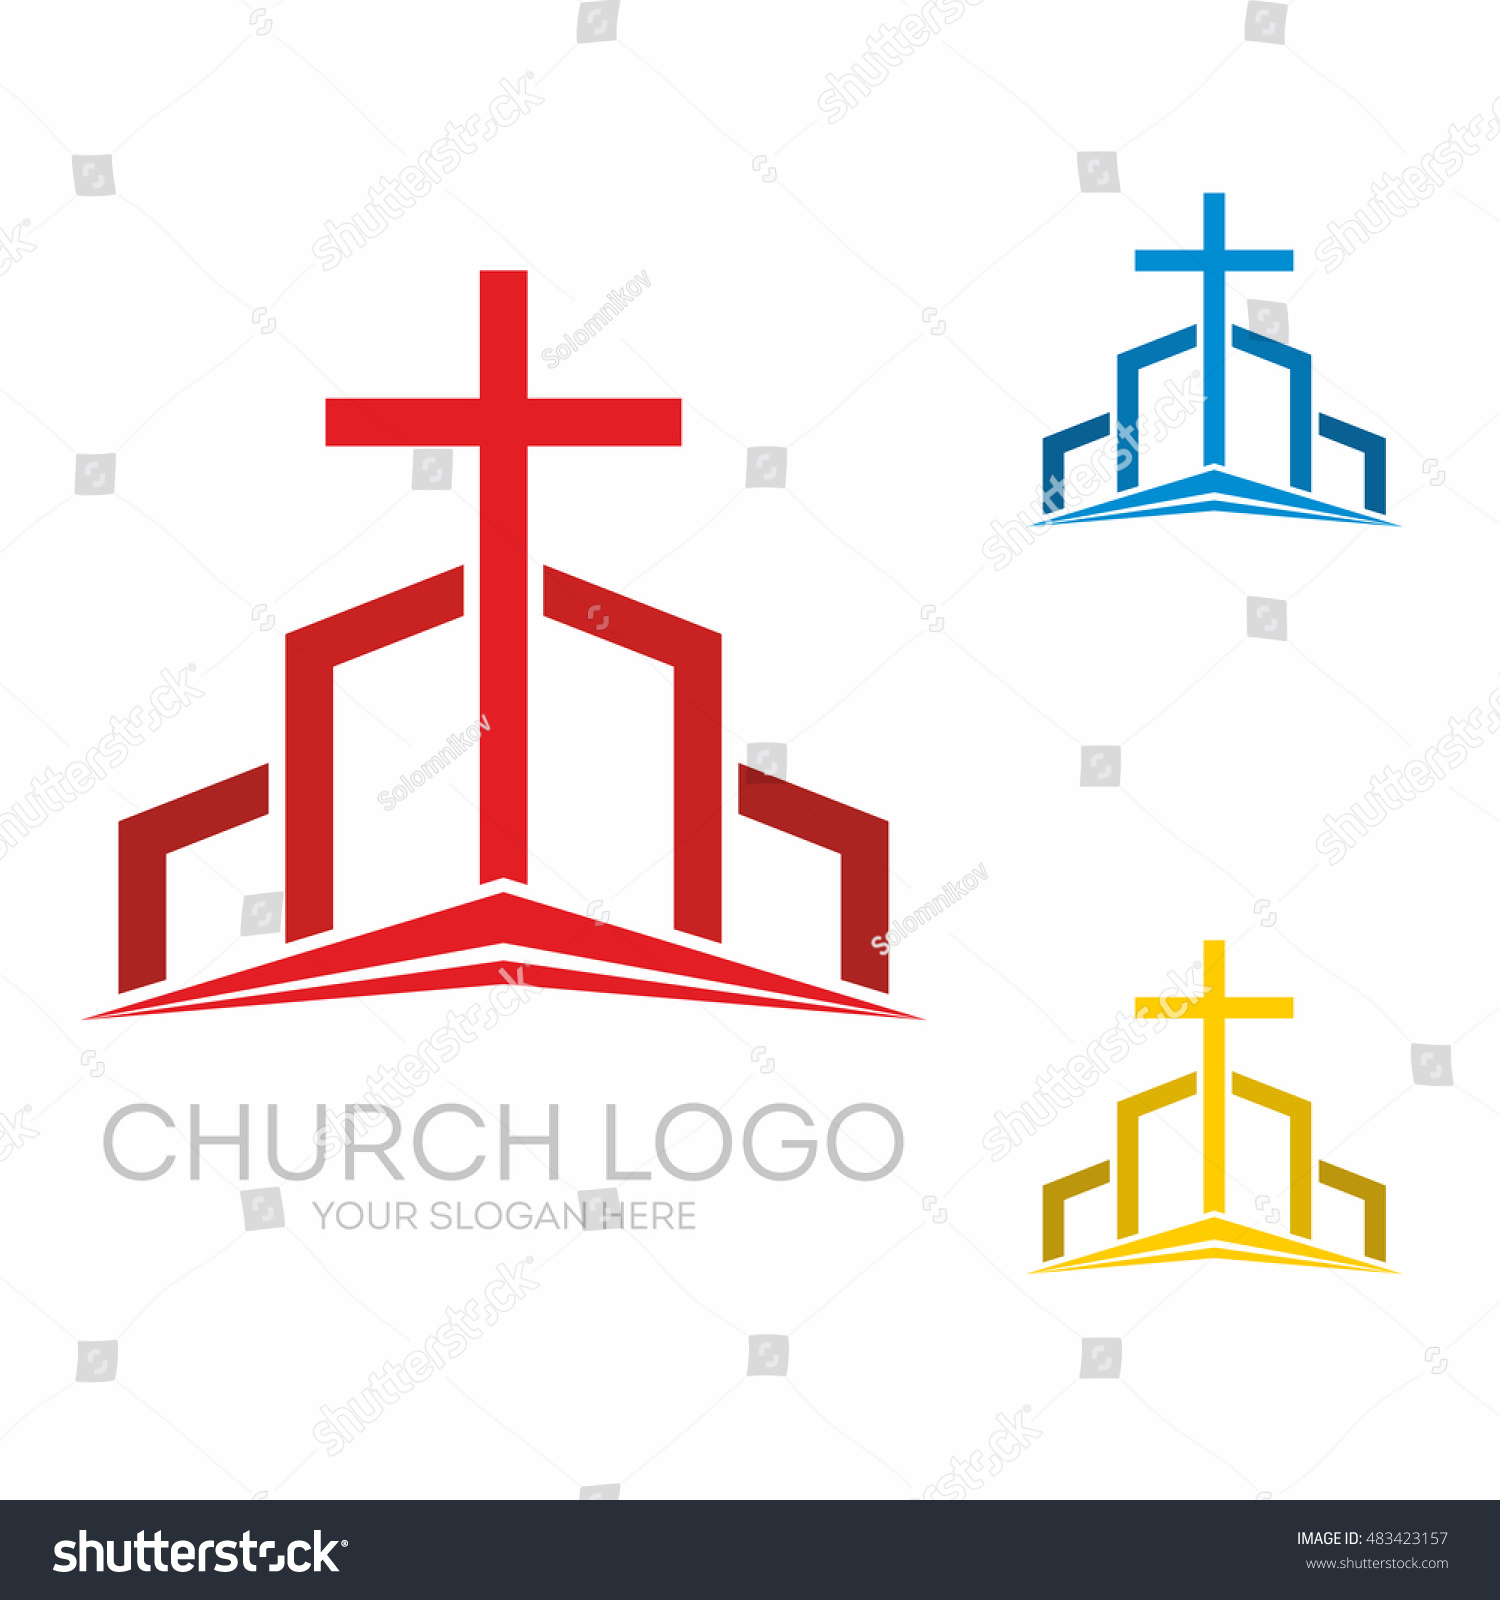 Church logo christian symbols altar cross stock vector 483423157 church logo christian symbols the altar and the cross of christ buycottarizona Image collections